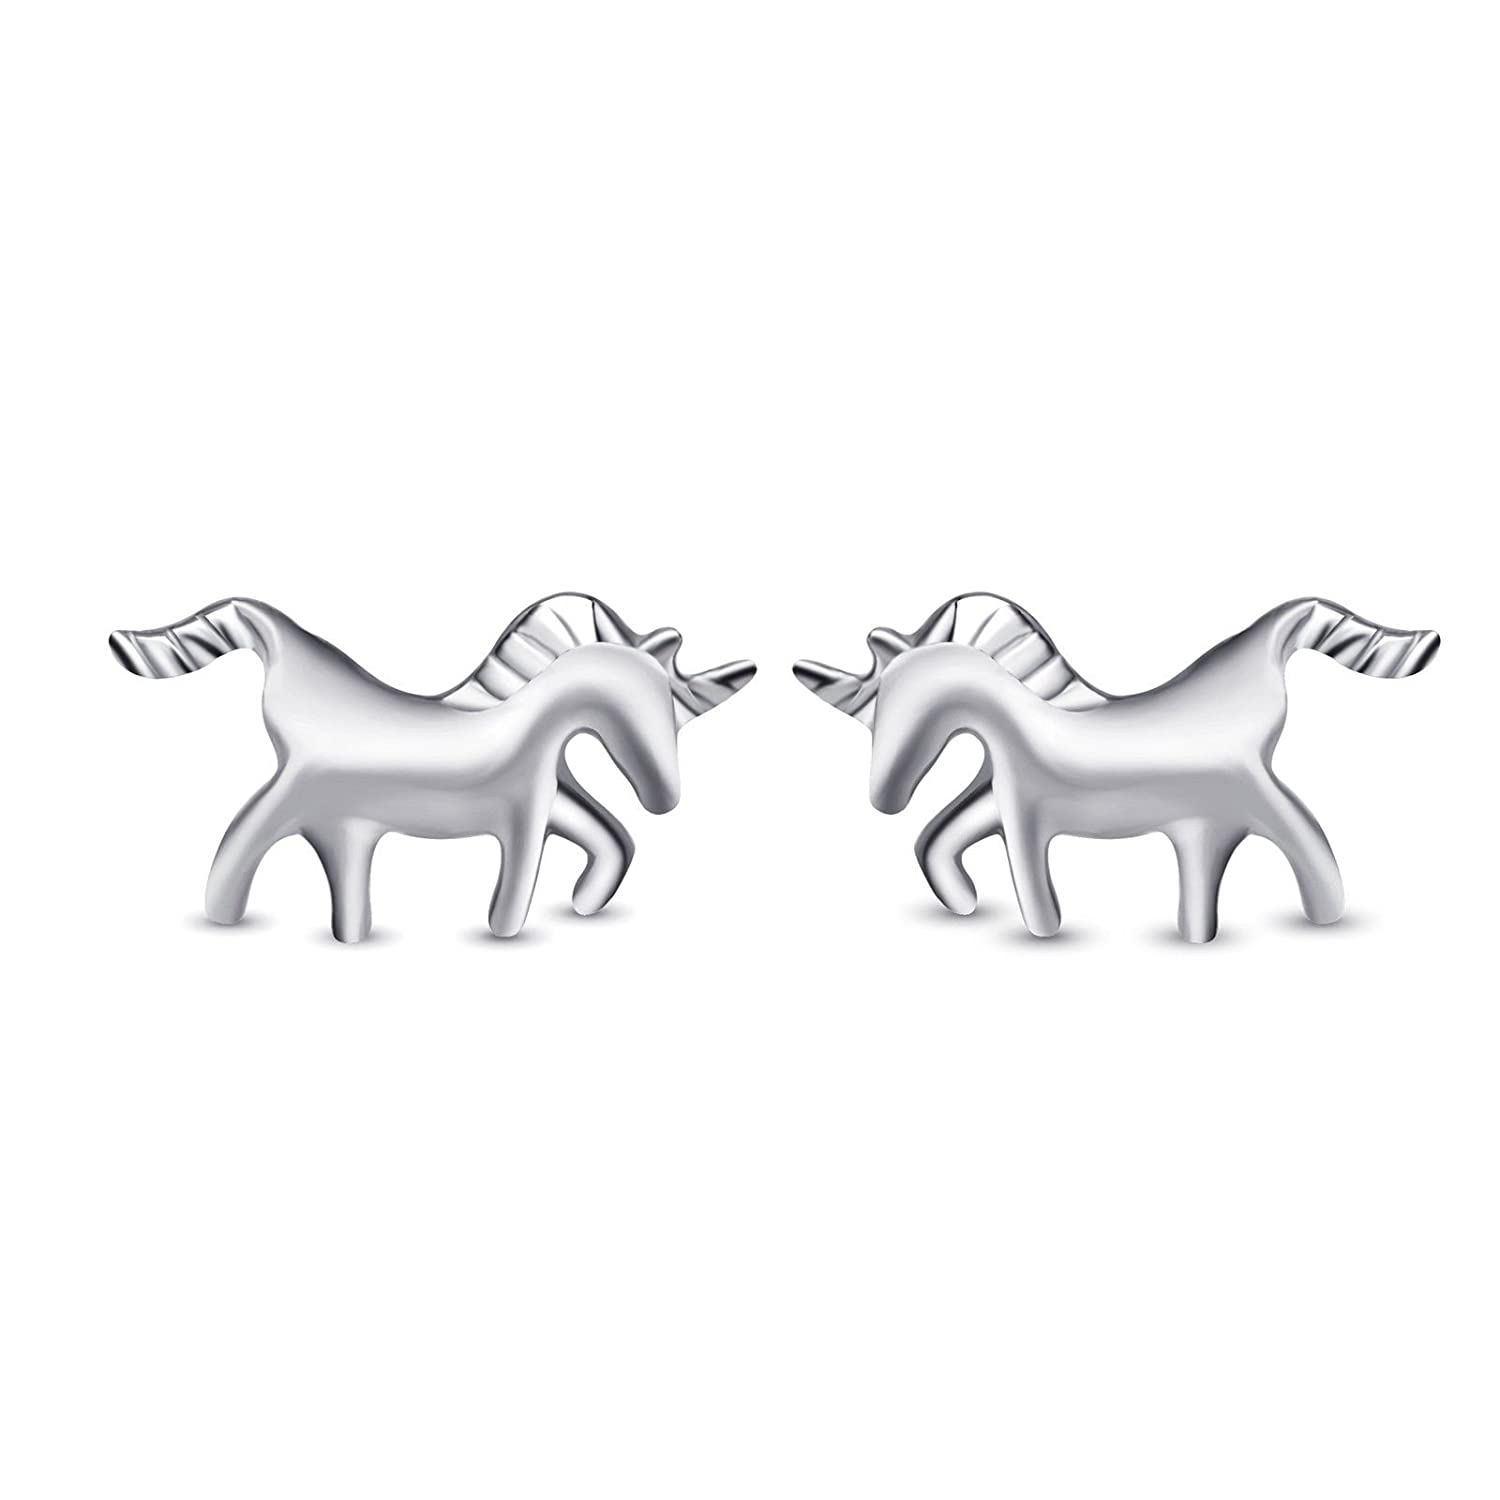 1 pair Fashion Jewelry 925 Sterling Silver Tiny Pony Horse Studs Earrings Female Gifts